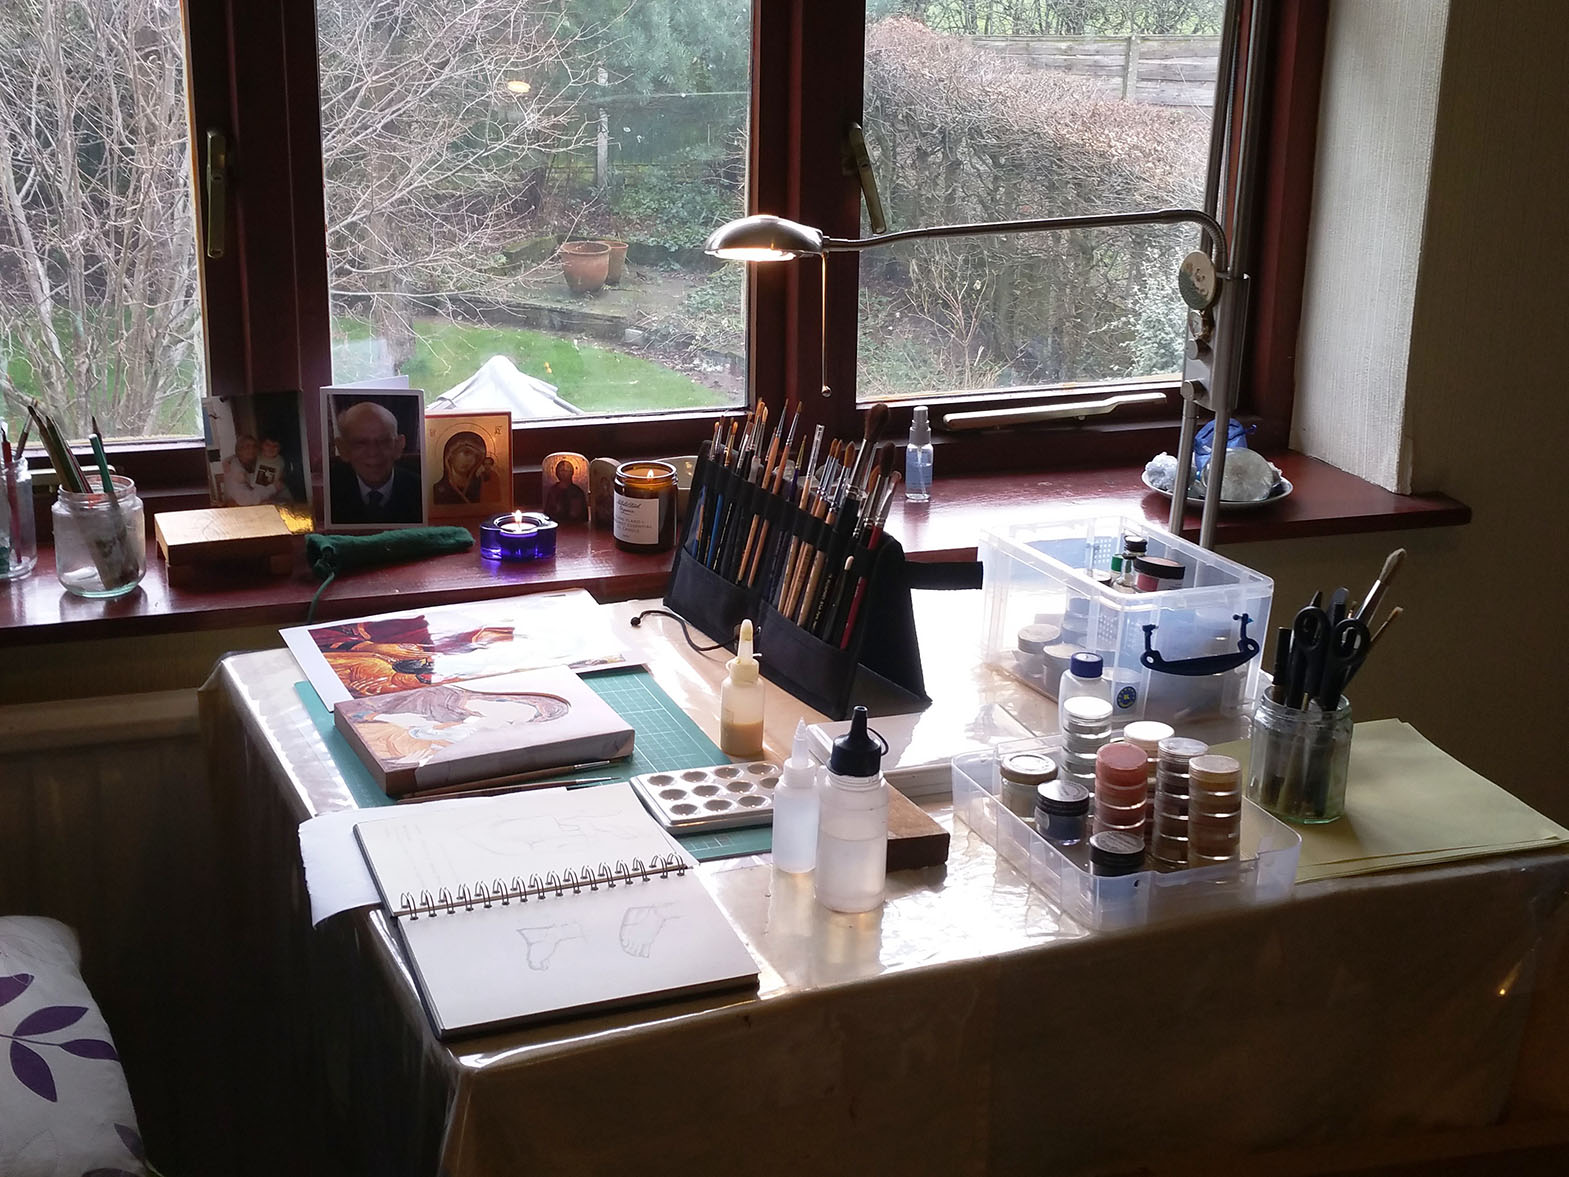 icon painter's work space